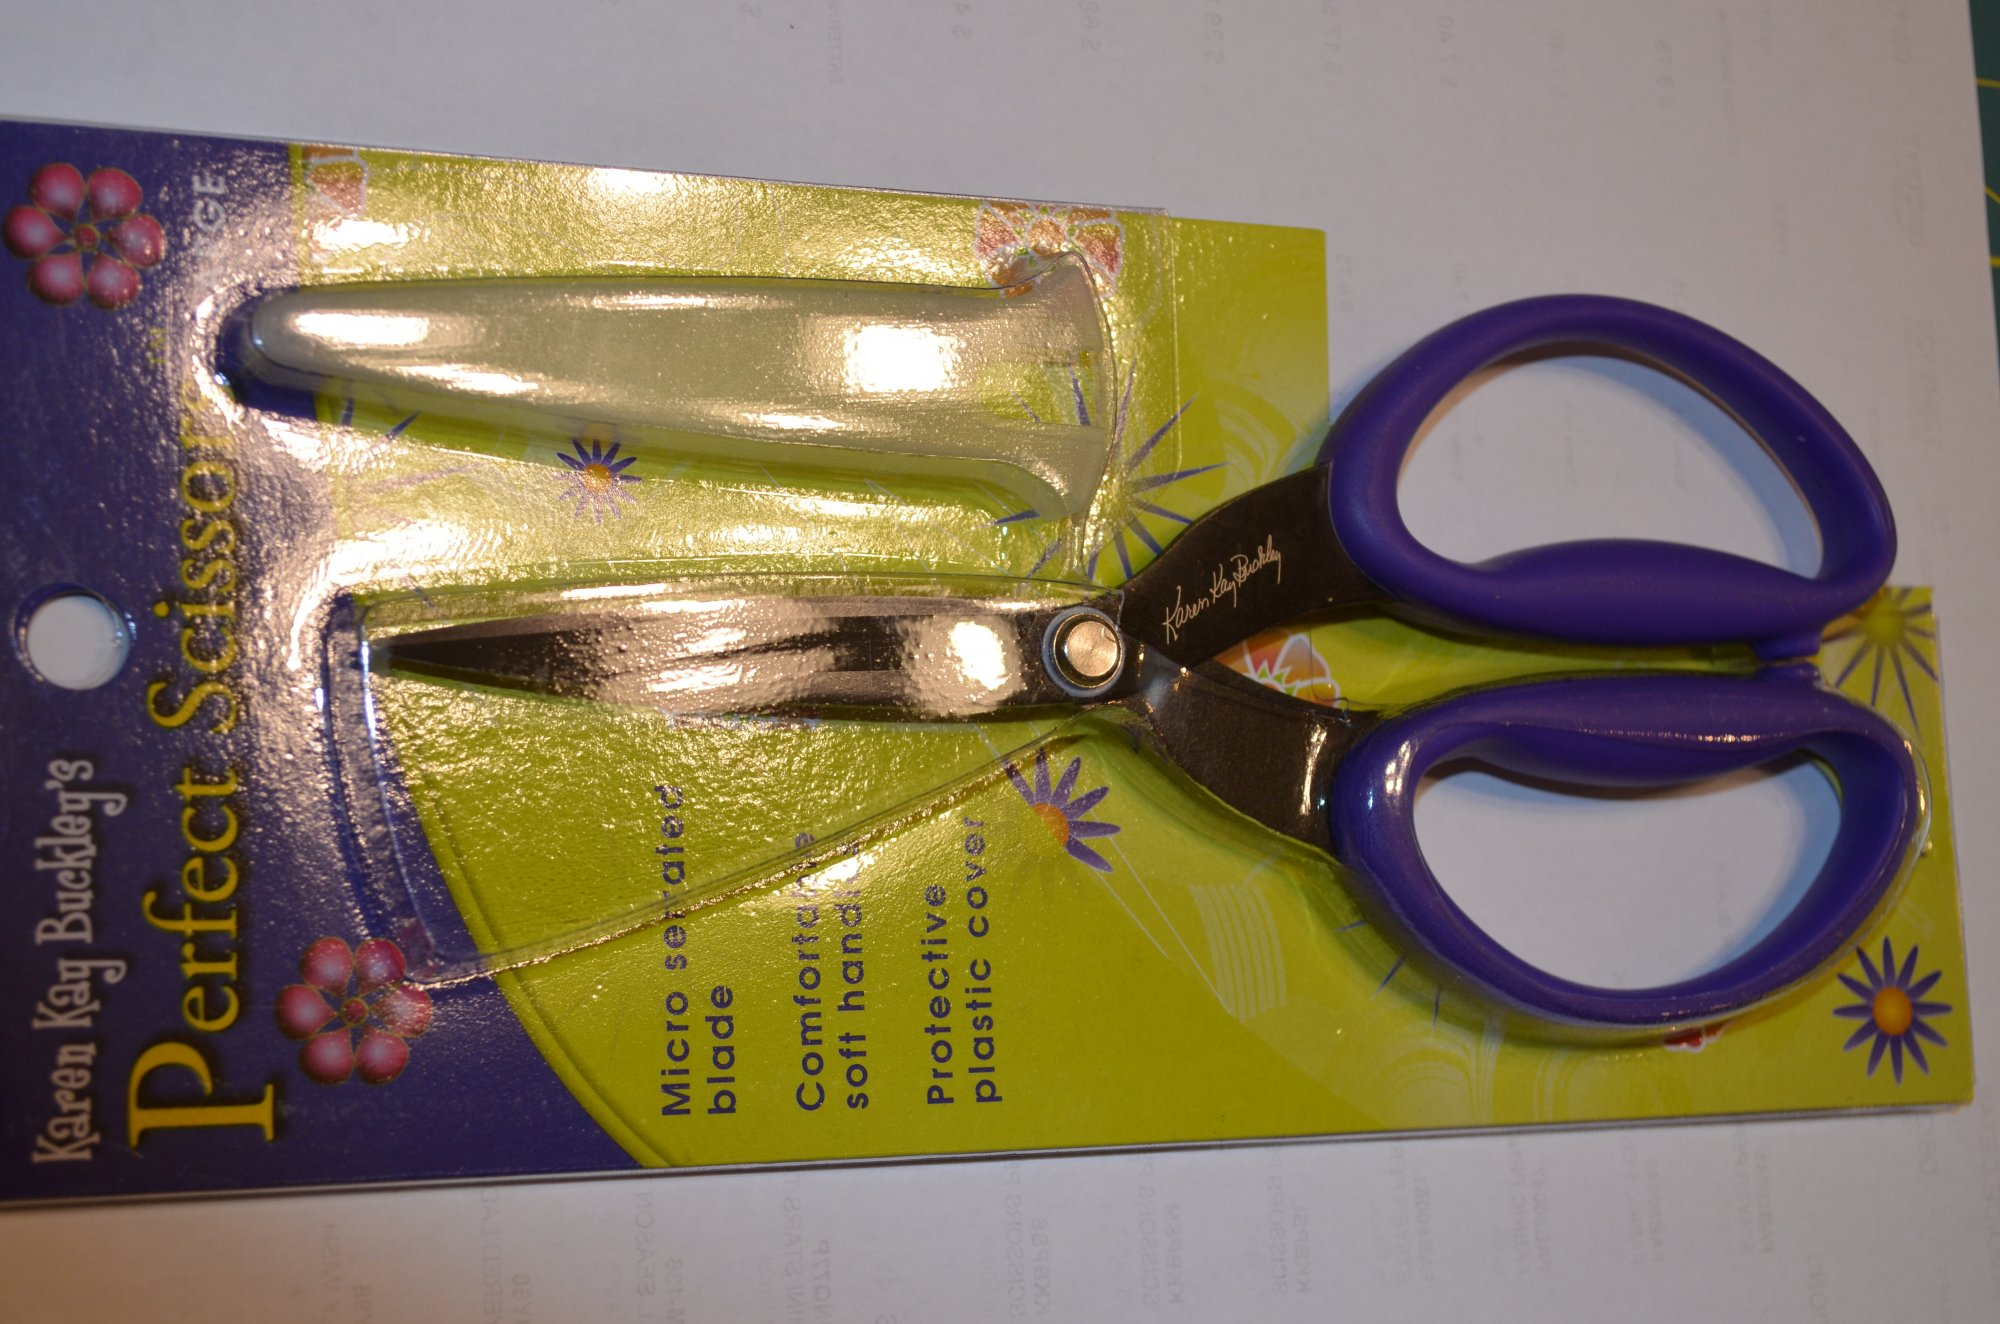 Perfect Scissors Large Purple KKBPSL 7.5